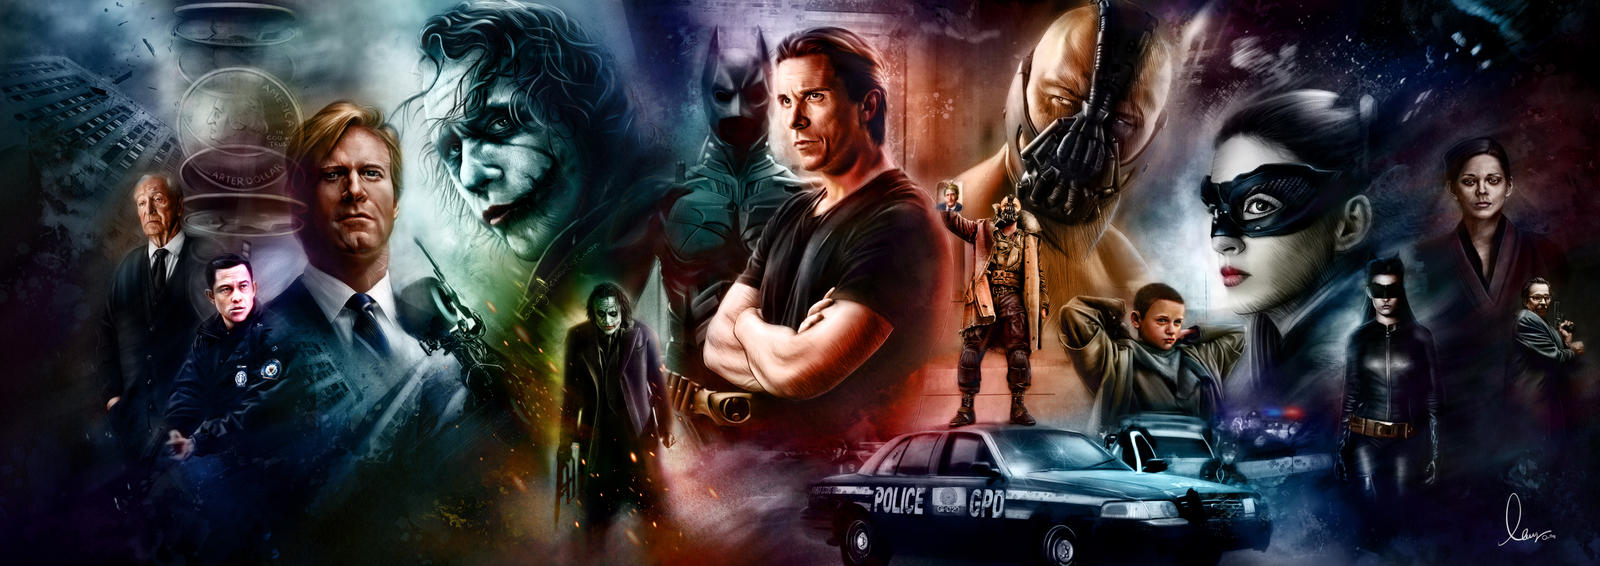 Image Result For Movie Collage